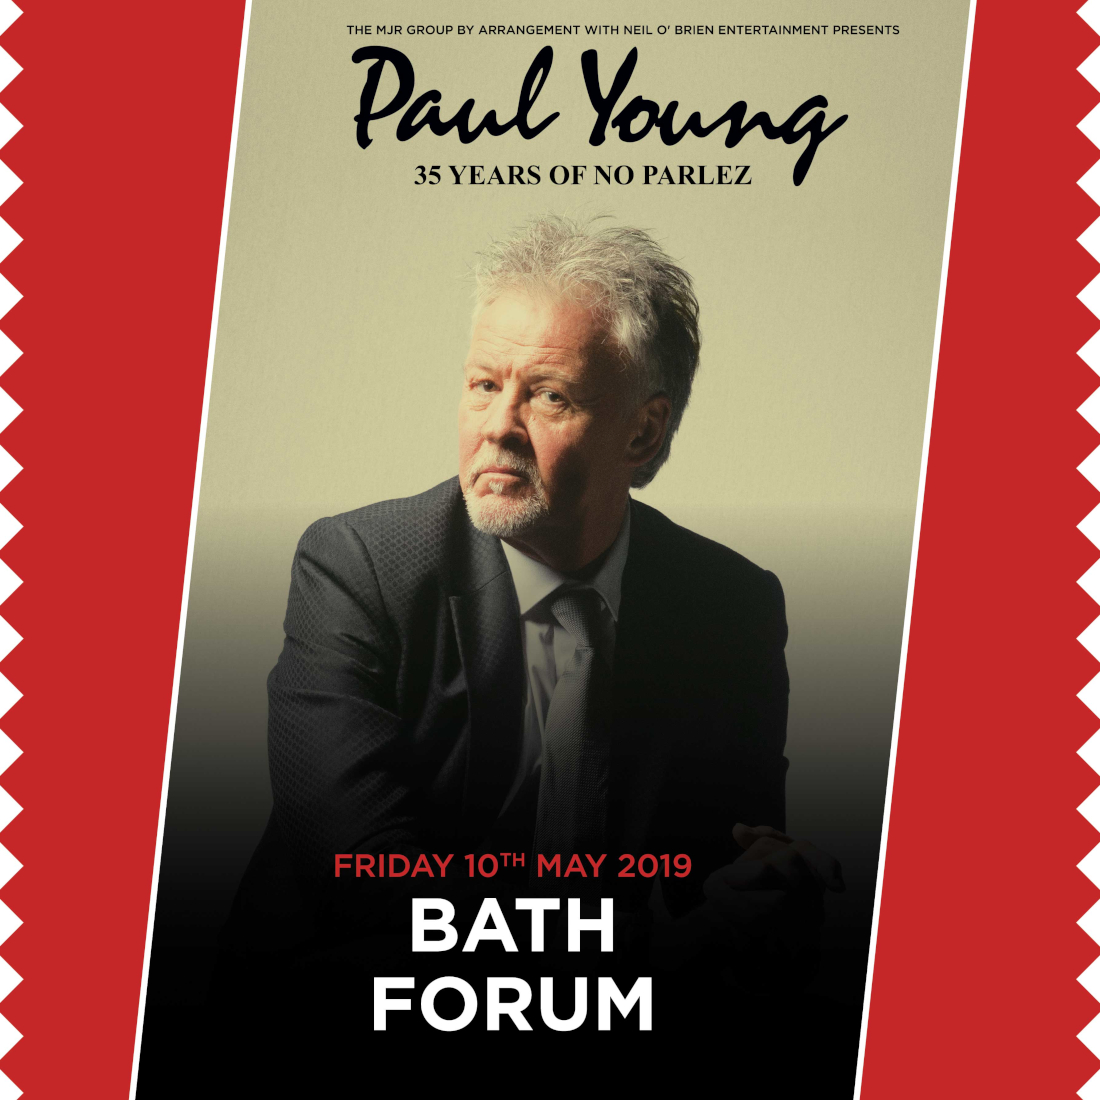 buy paul young tickets  paul young tour details  paul